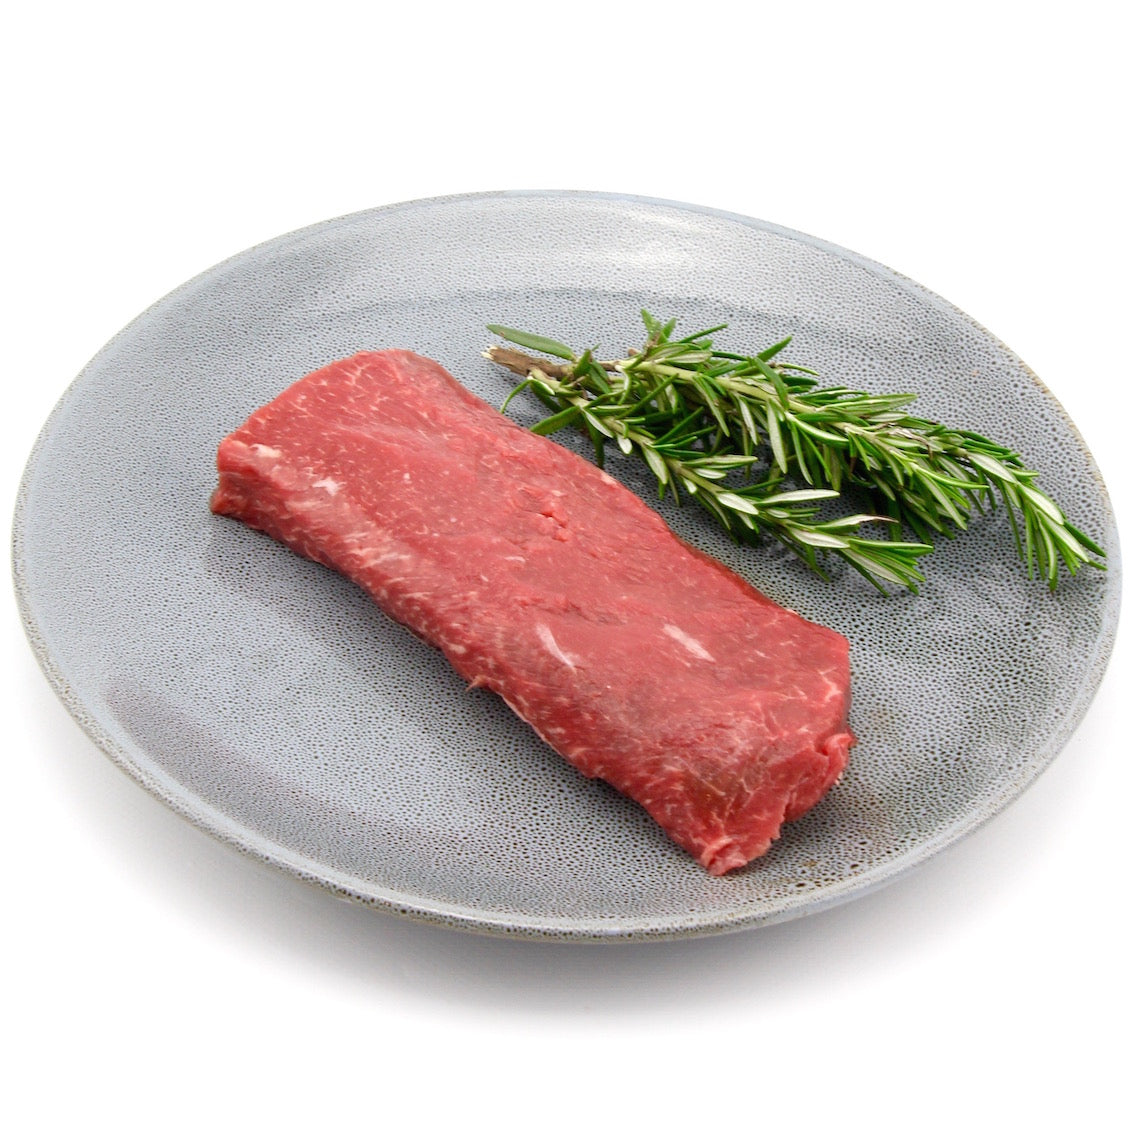 Cowra Lamb Backstraps (approx. 260g - 300g) - EACH